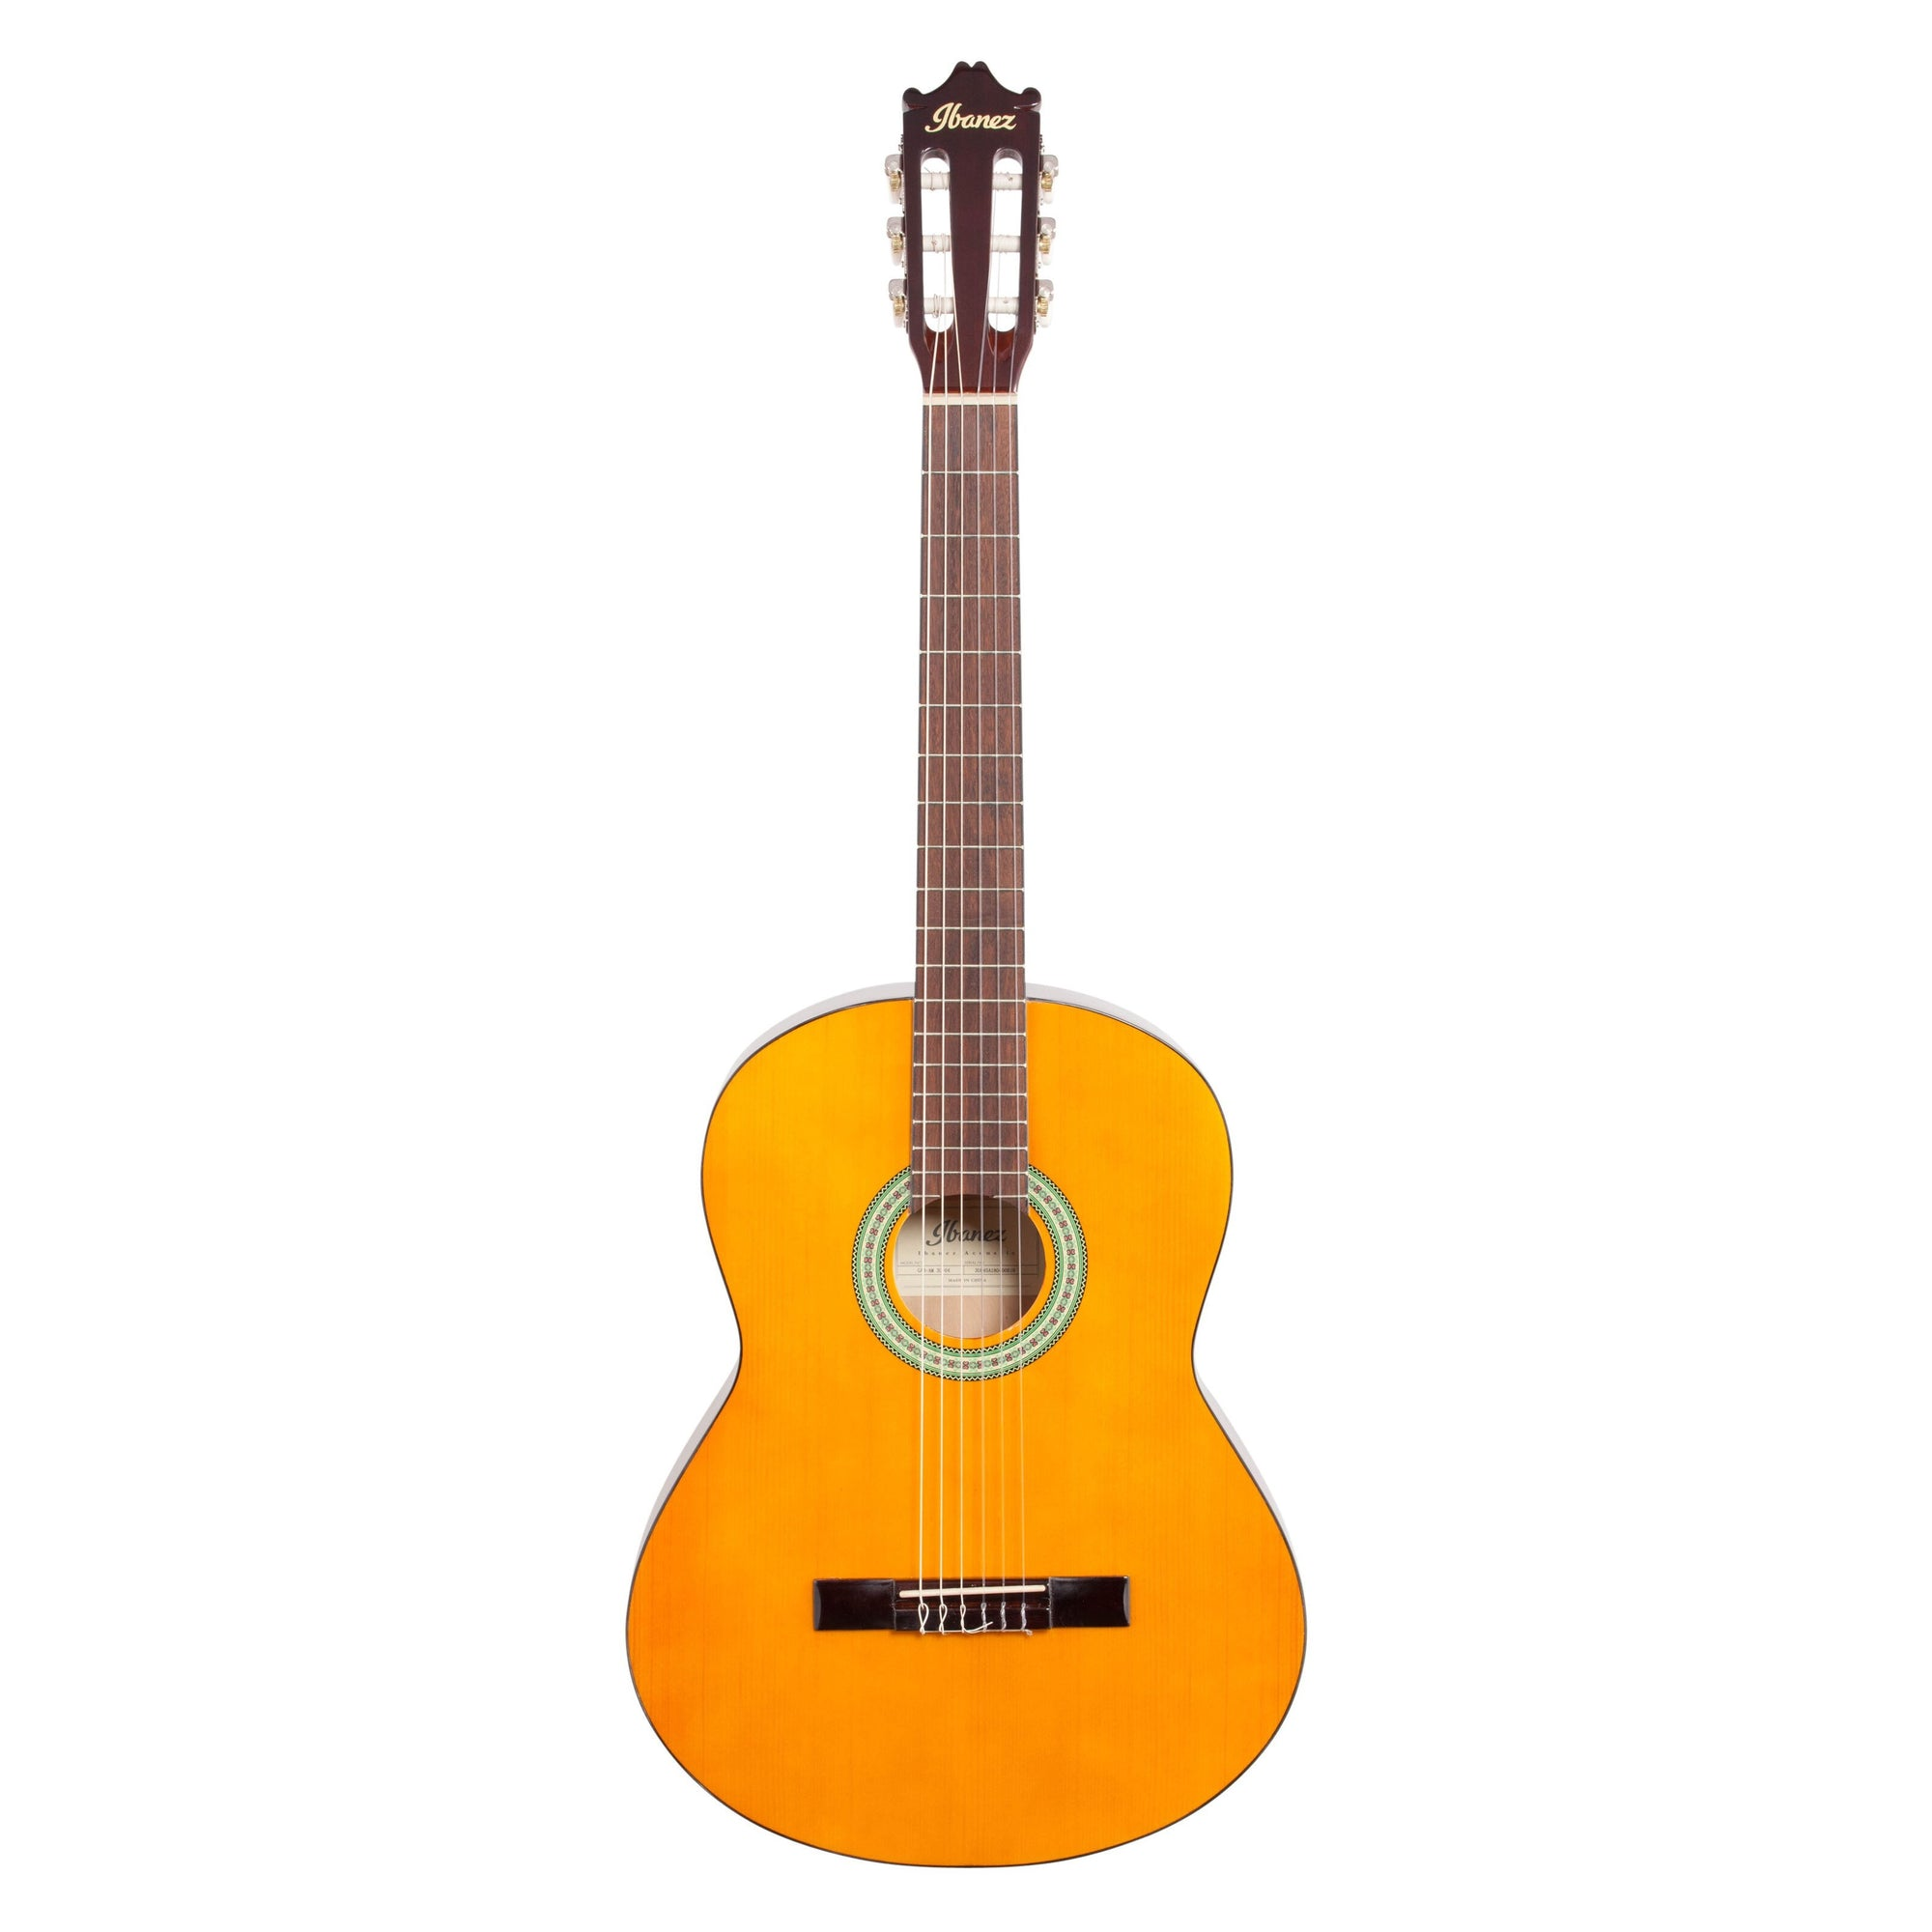 Ibanez GA30 Classical Guitar, Amber High Gloss